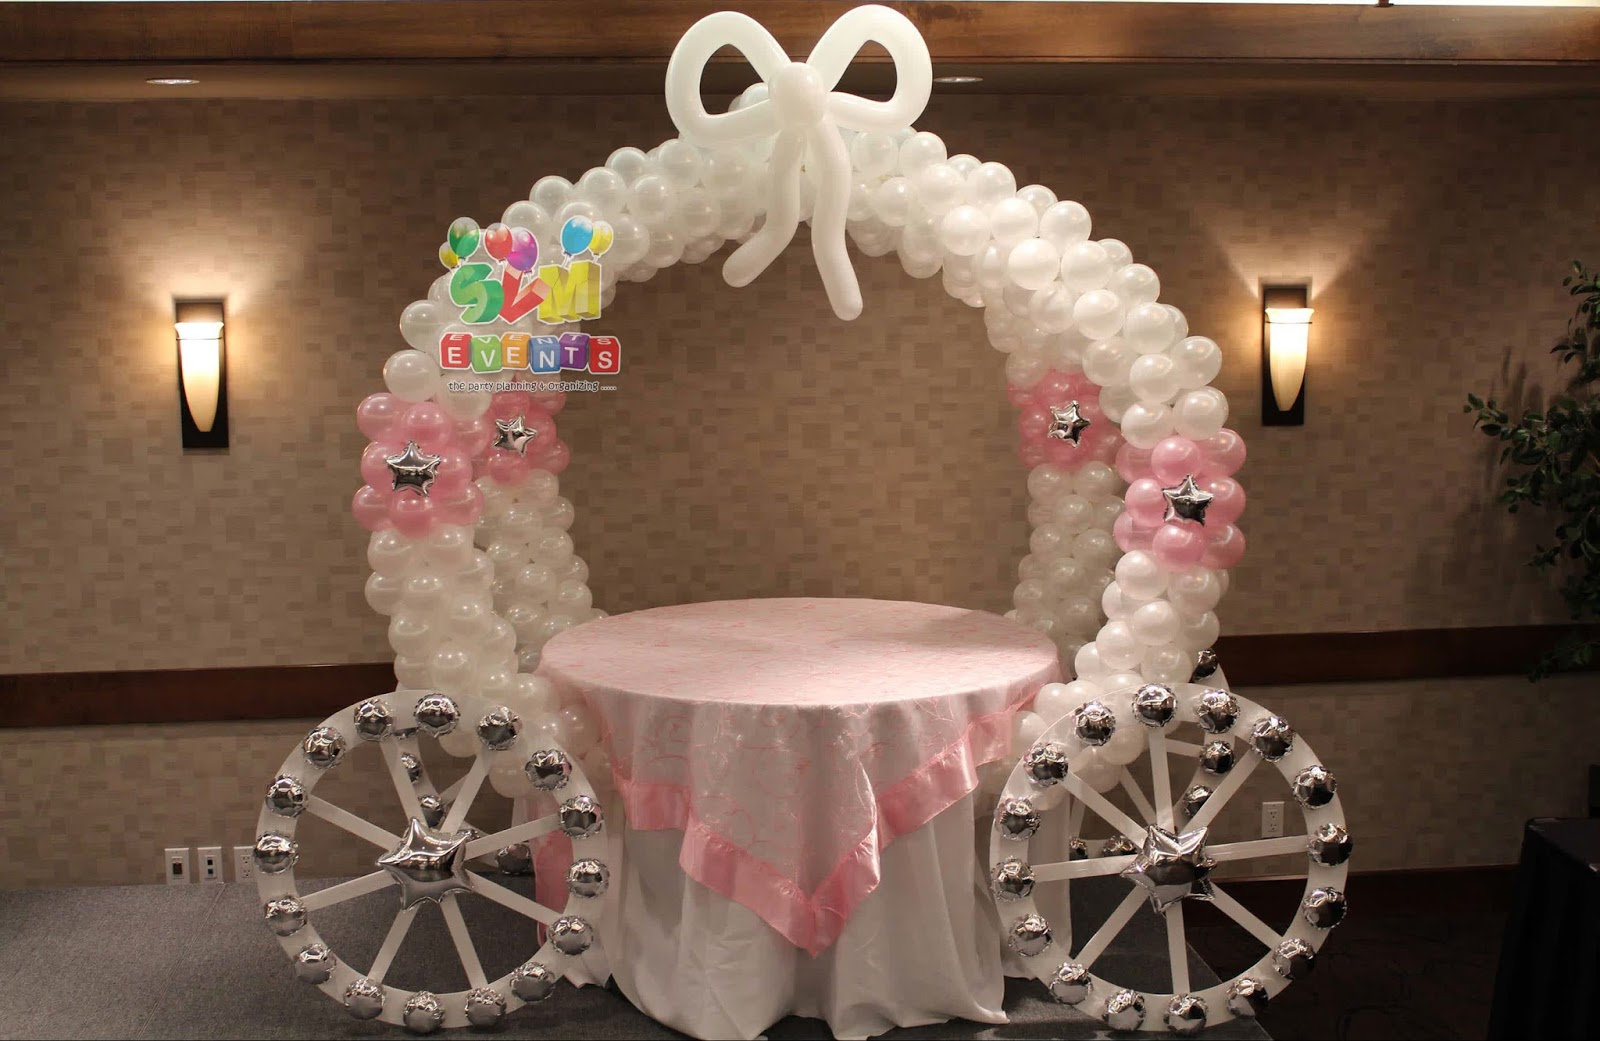 Svm events chariot theme for kids 1st birthday party and for Balloon decoration ideas for 1st birthday party